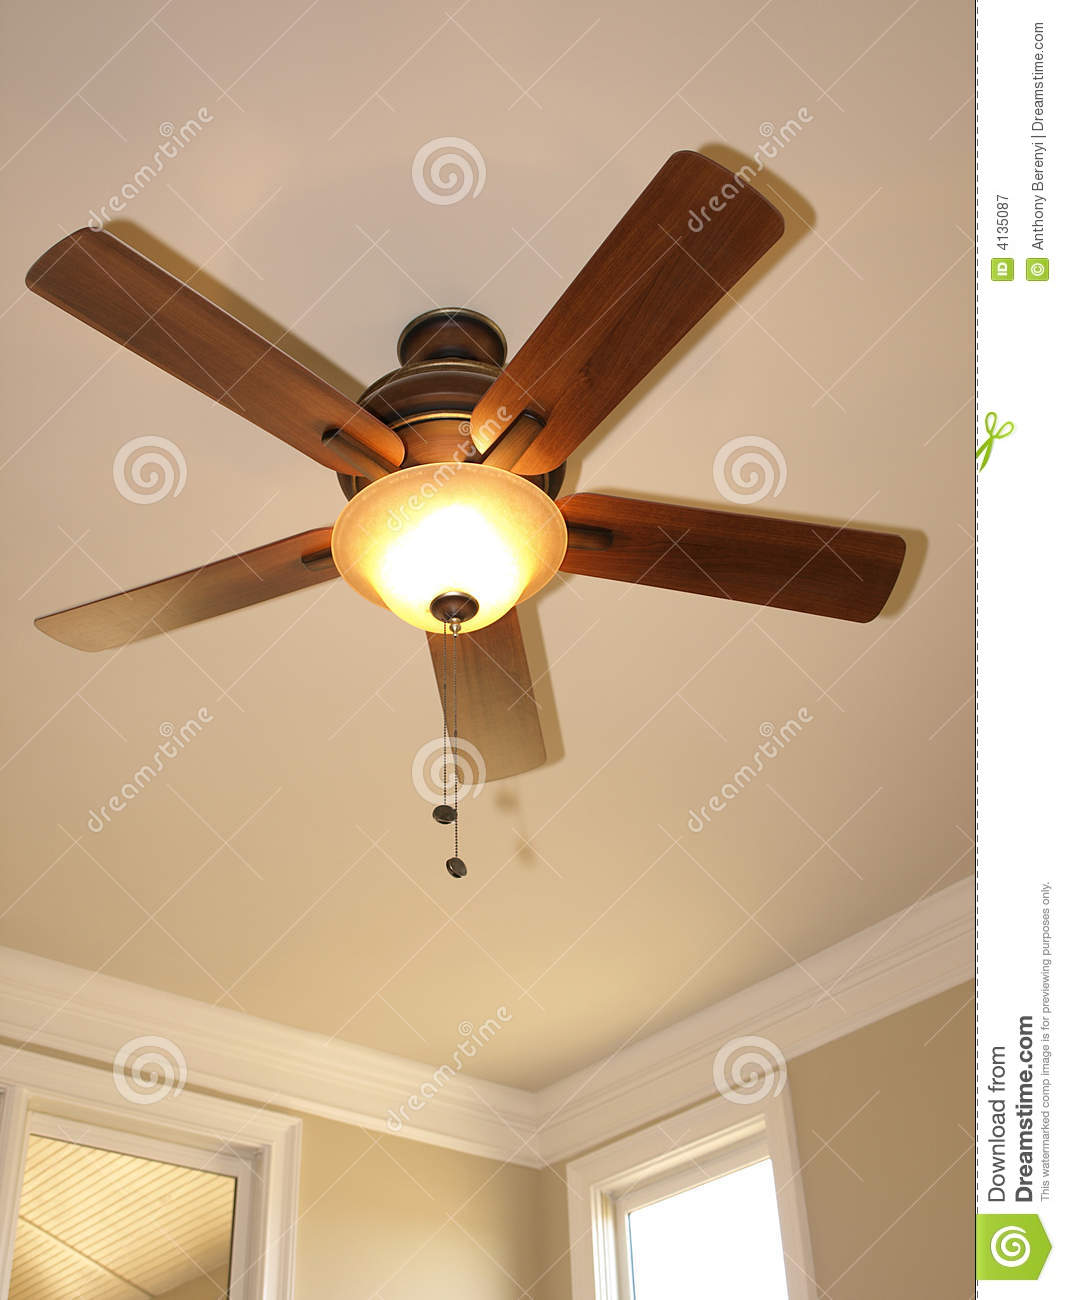 Ceiling Fan With Window 2 Royalty Free Stock graphy